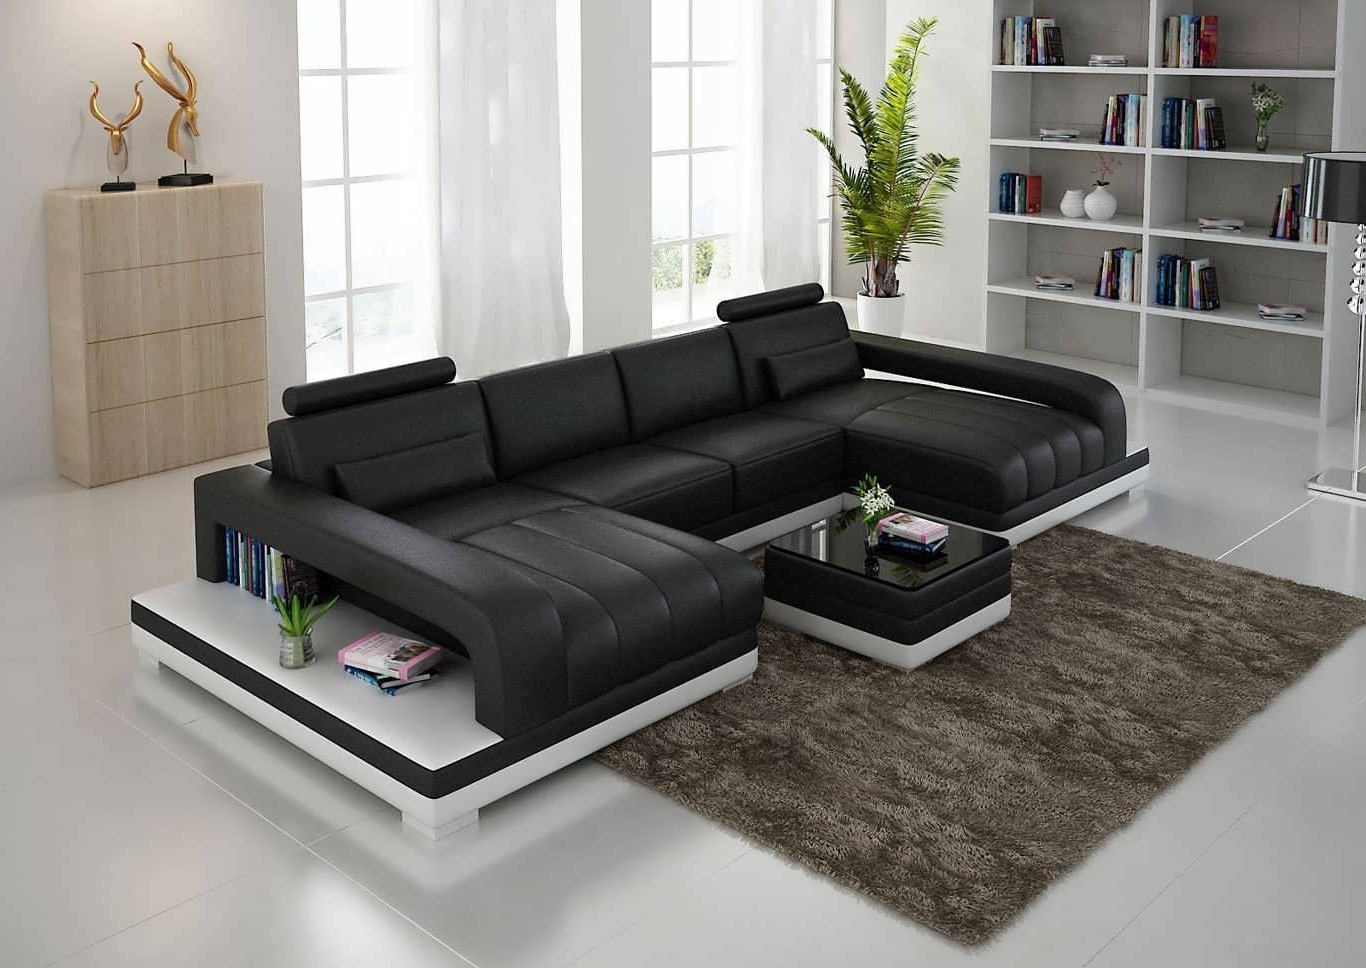 Double Chaise Couches In 2018 Sofa : Corner Chaise Sofa Round Sofa L Sectional Couch Deep (View 11 of 15)